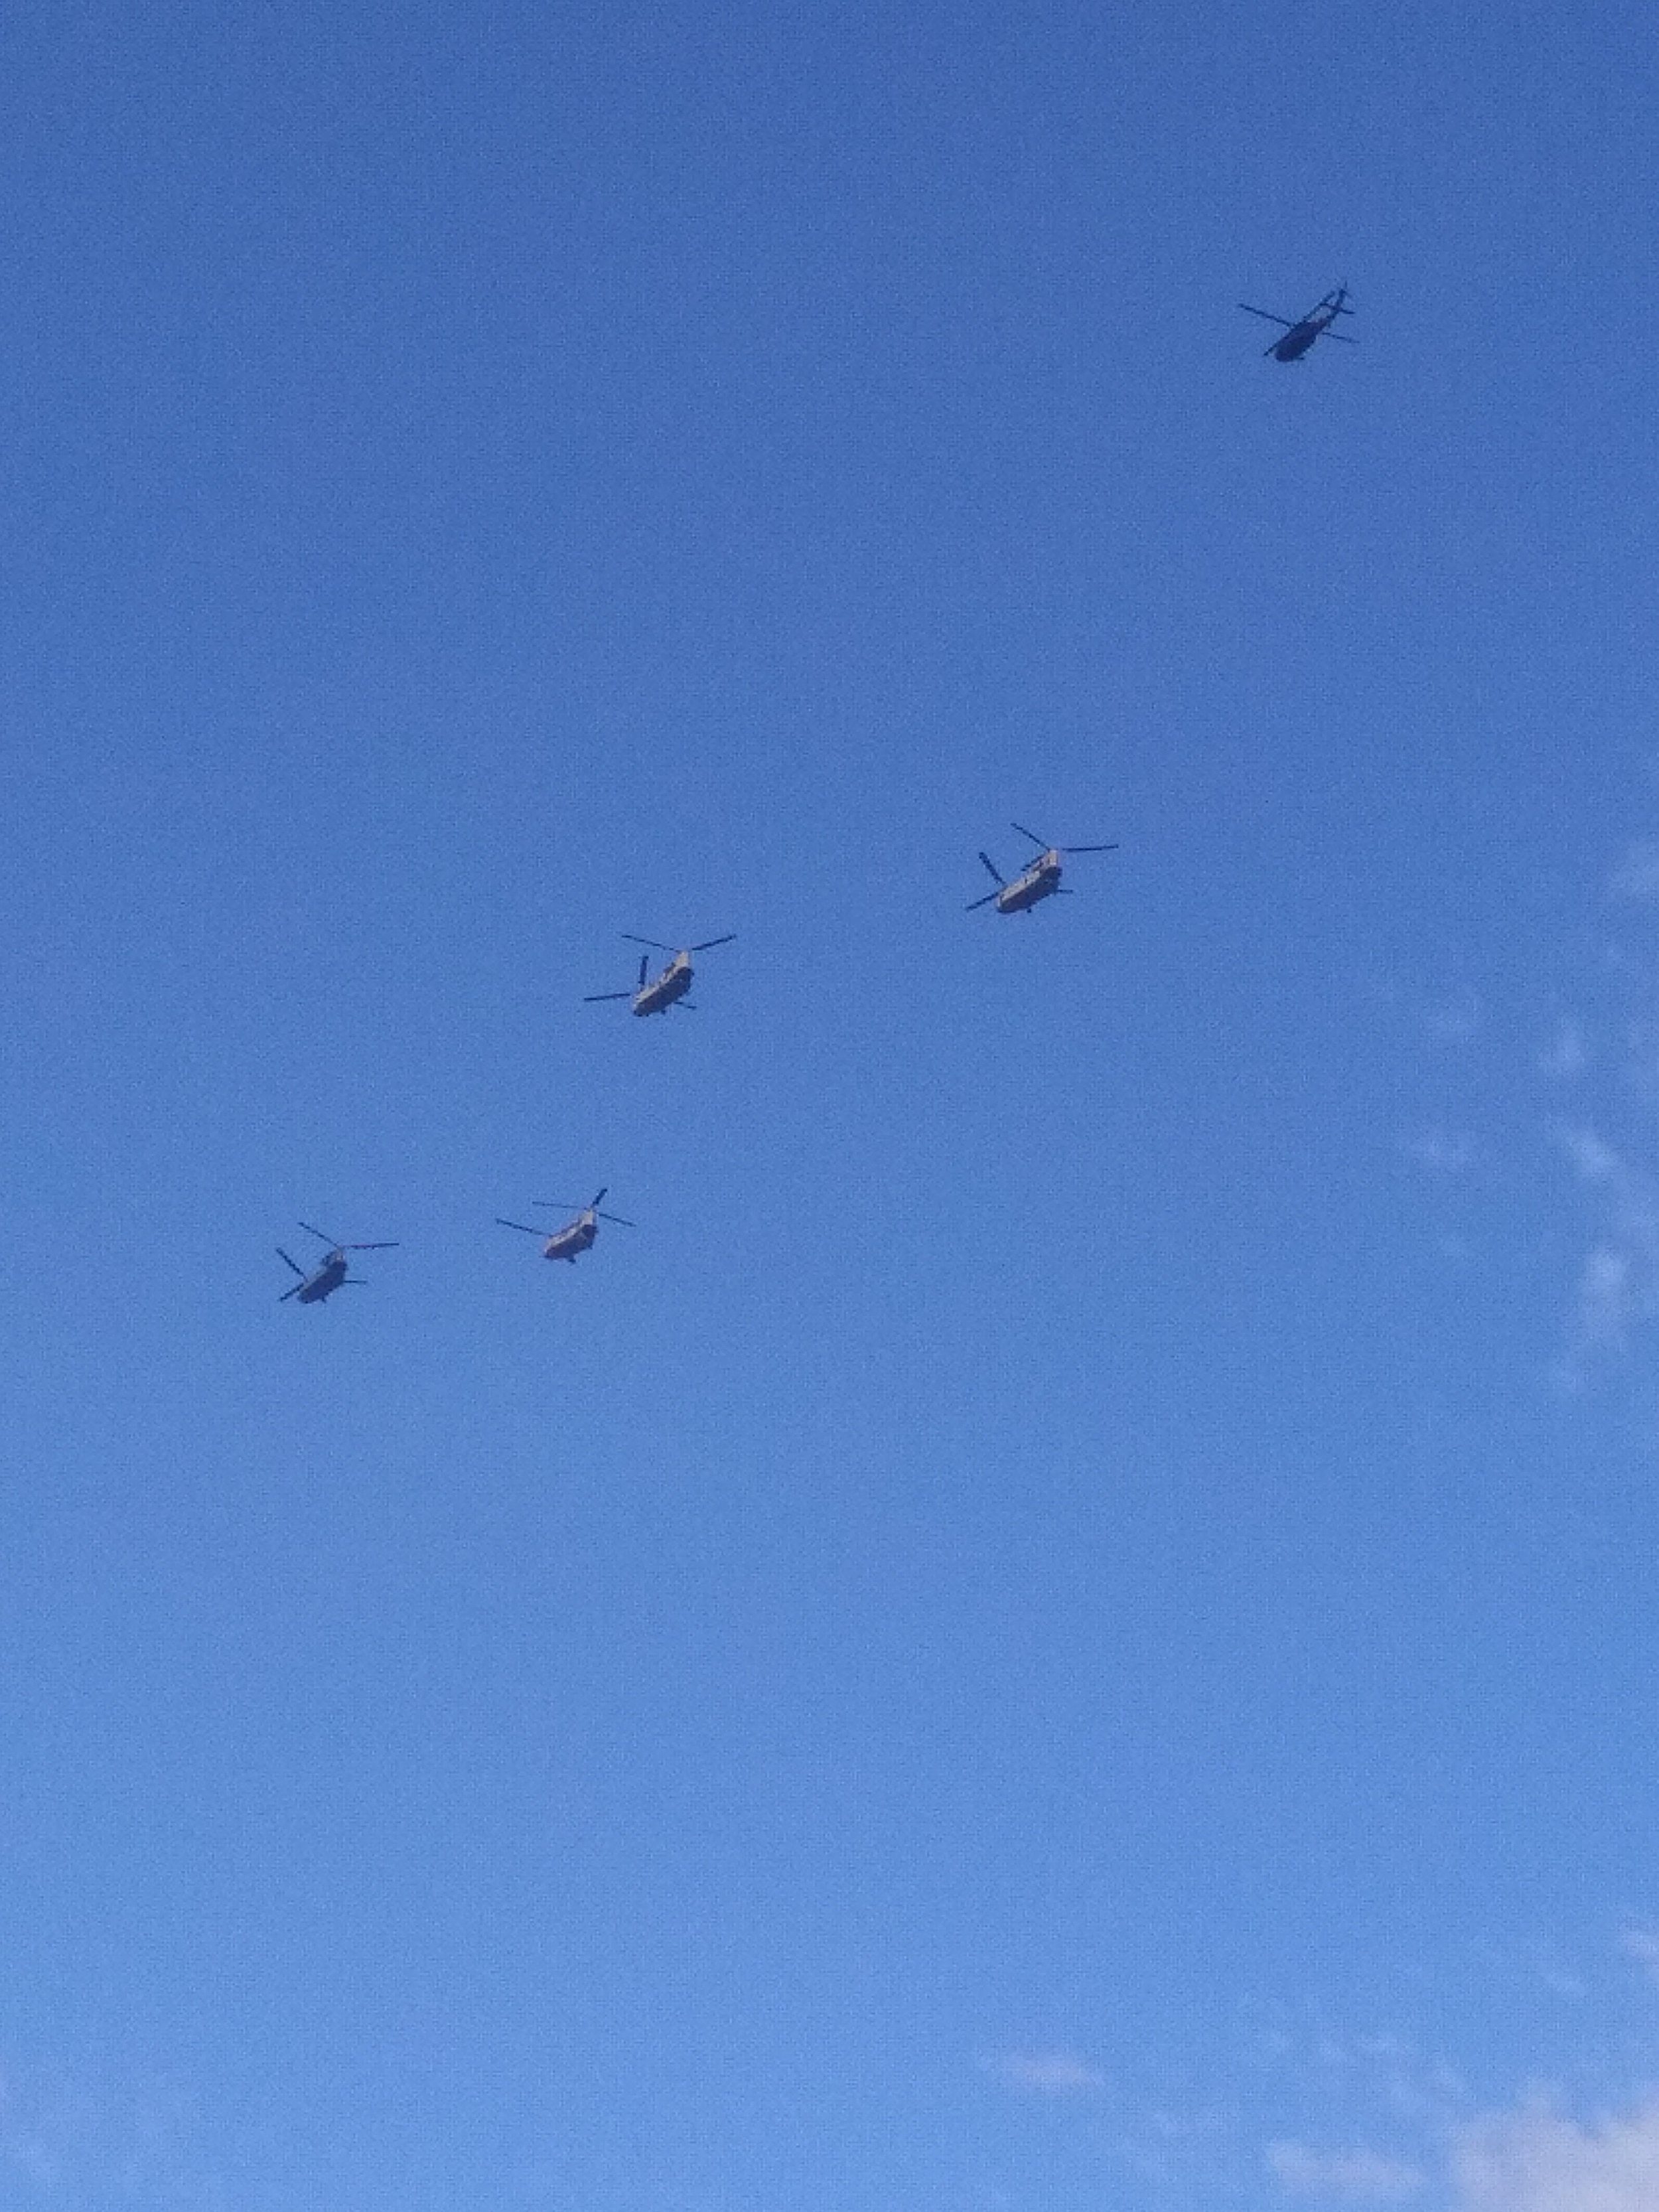 Chinook  helicopters above Paris